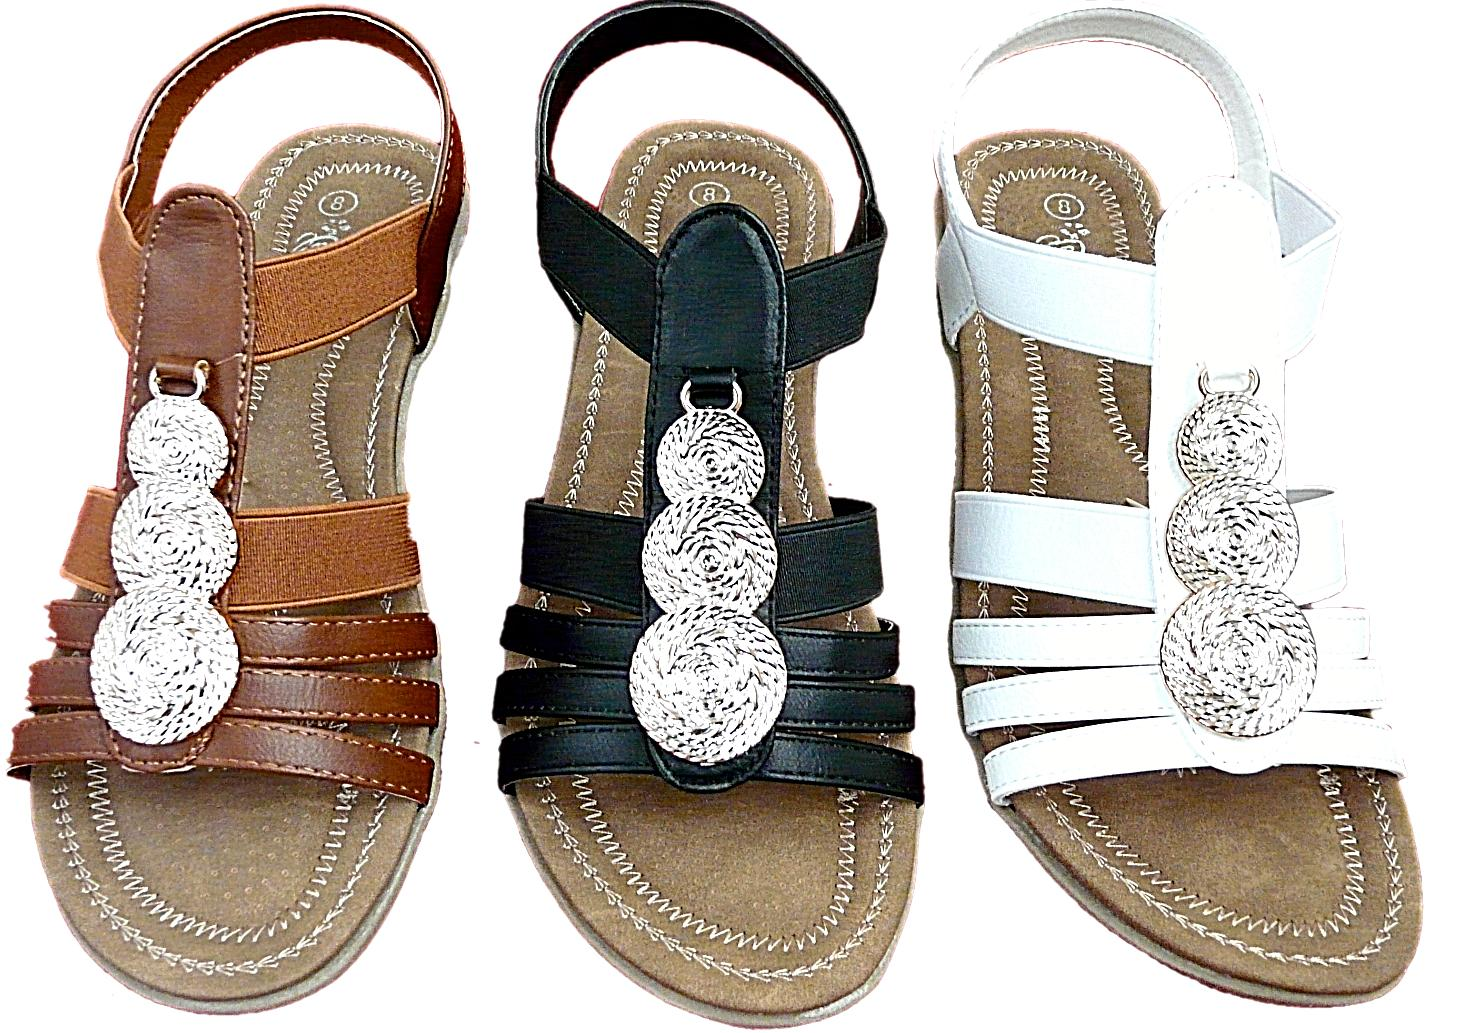 New Women Sandals Back Strap Tan/Wht/Blk Size #5-10